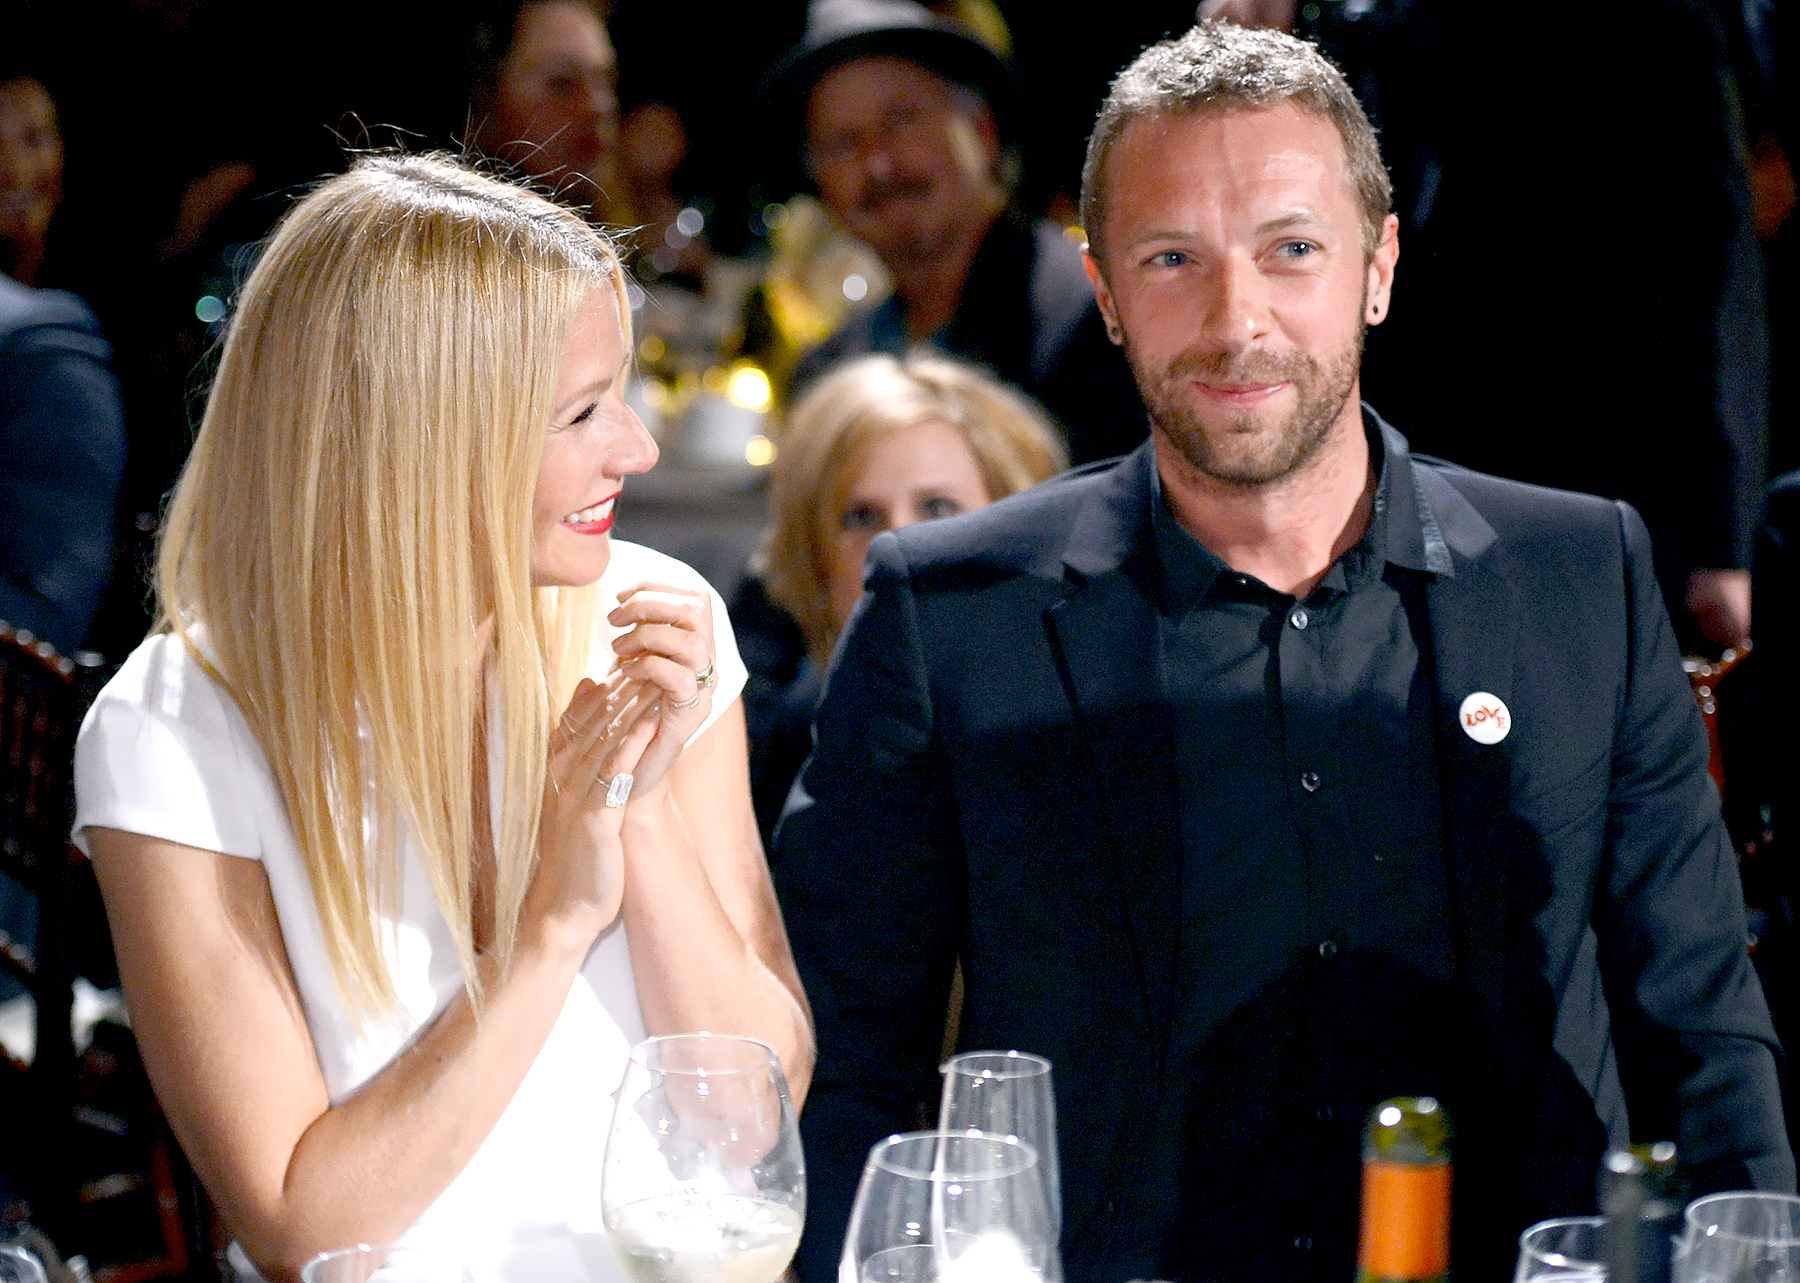 Gwyneth Paltrow and Chris Martin attend the 3rd annual Sean Penn & Friends HELP HAITI HOME Gala benefiting J/P HRO presented by Giorgio Armani at Montage Beverly Hills on January 11, 2014 in Beverly Hills, California.